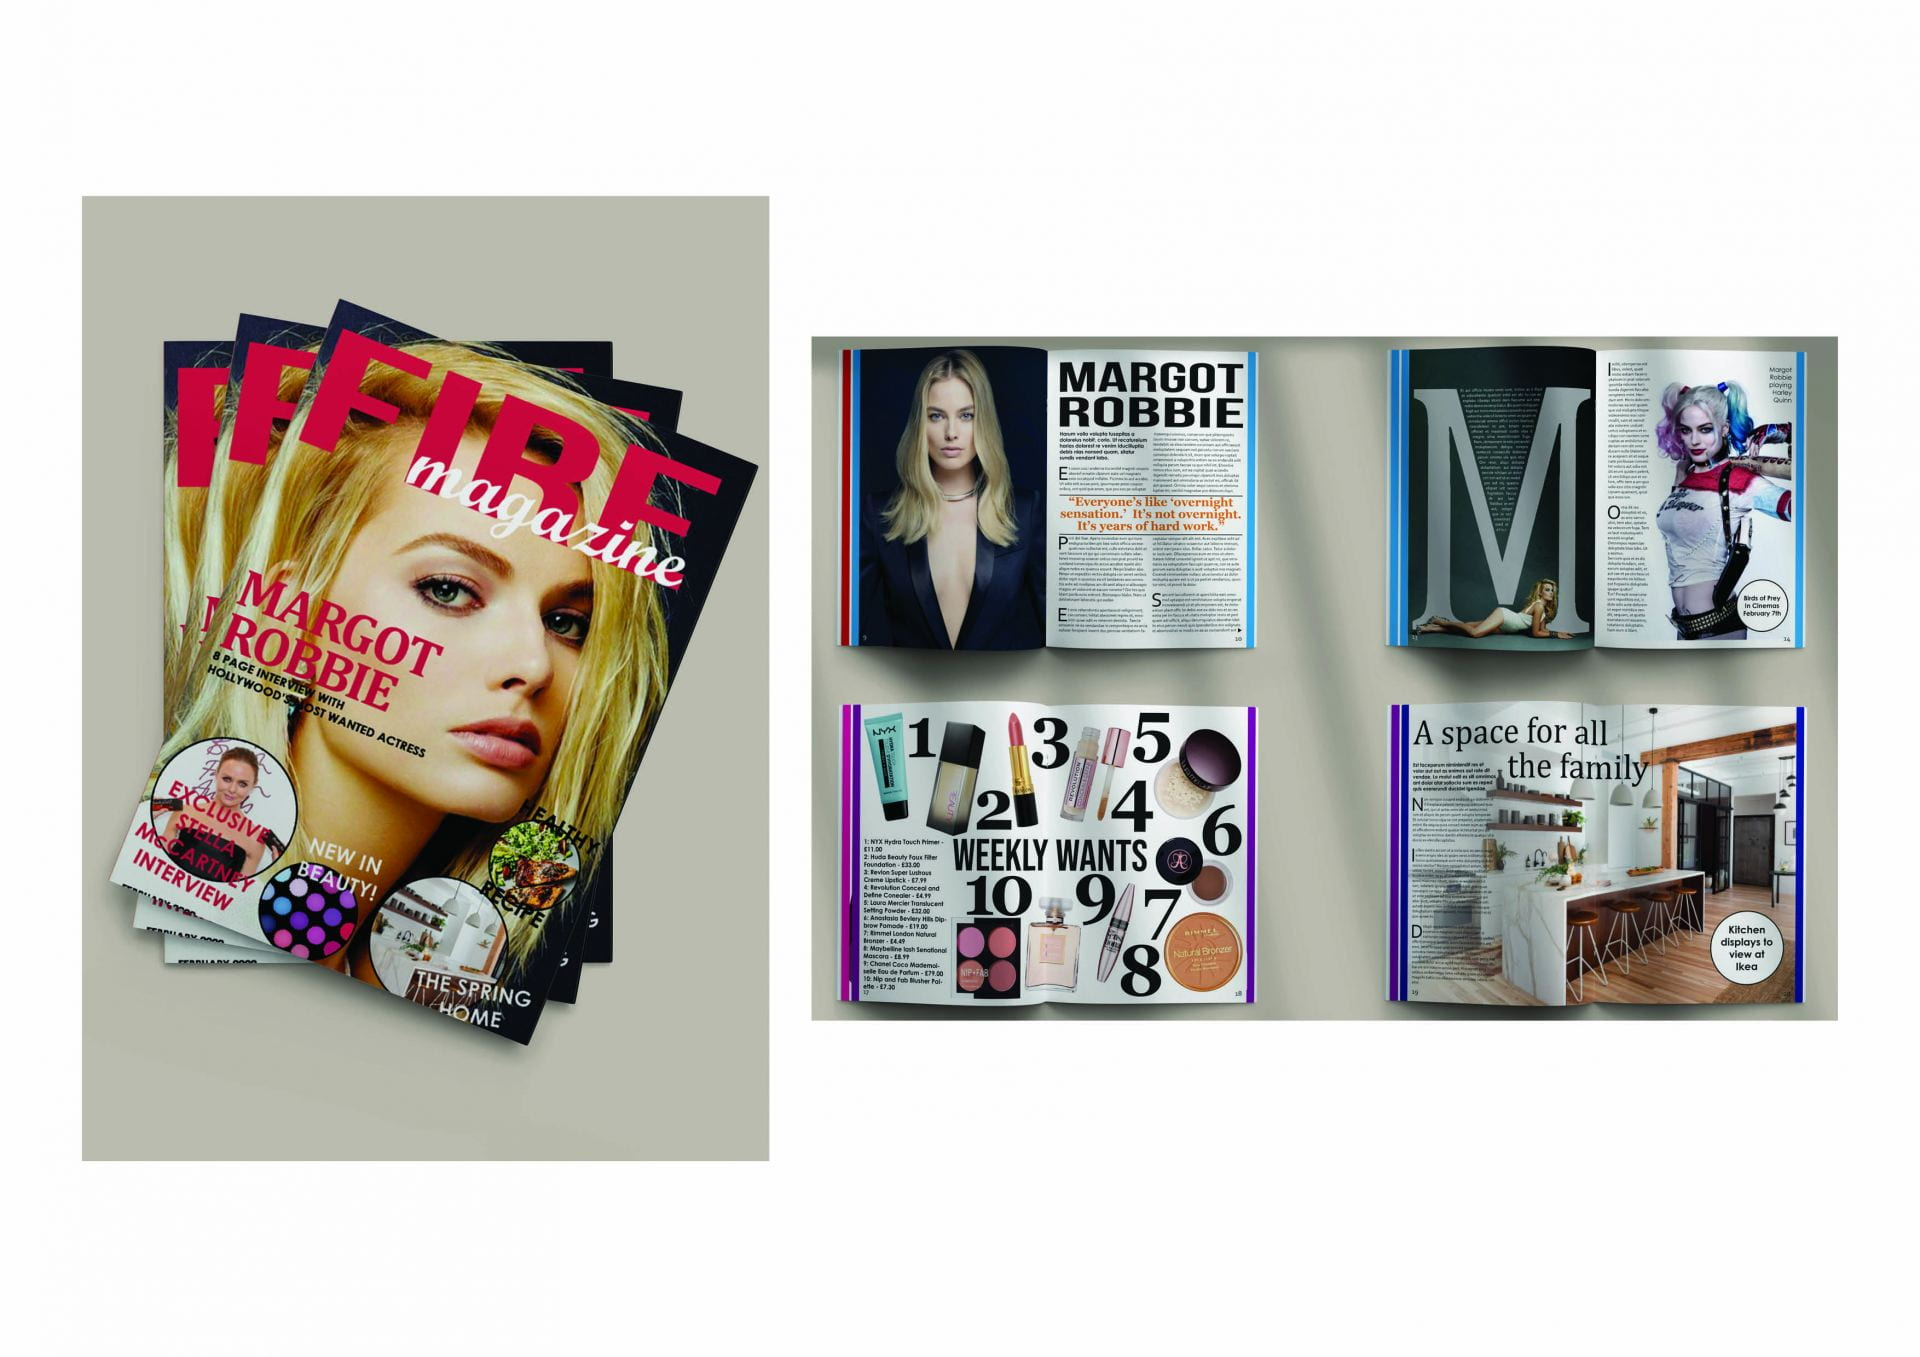 A magazine featuring interviews, fashion, healthy eating and more.